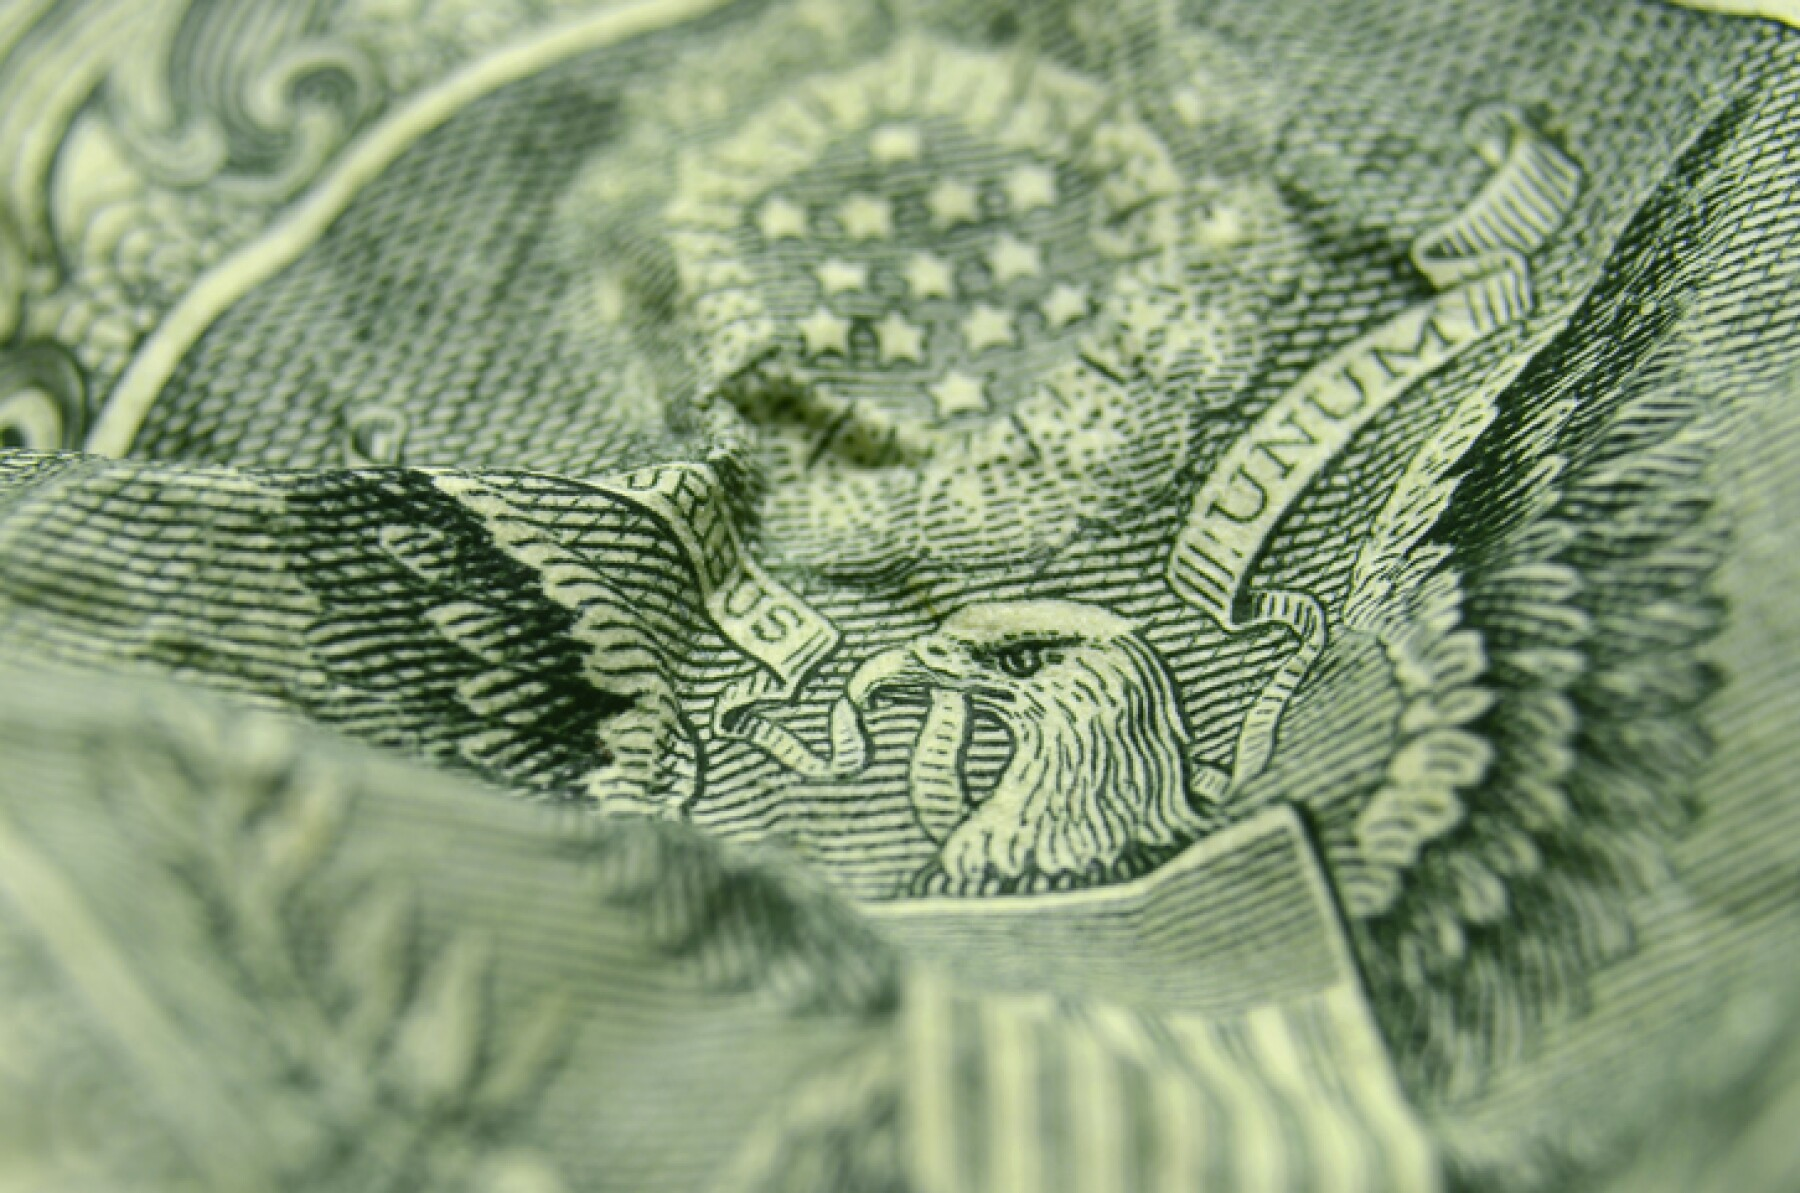 Selective focus on the eagle's face from the reverse of the US 1 dollar bill.